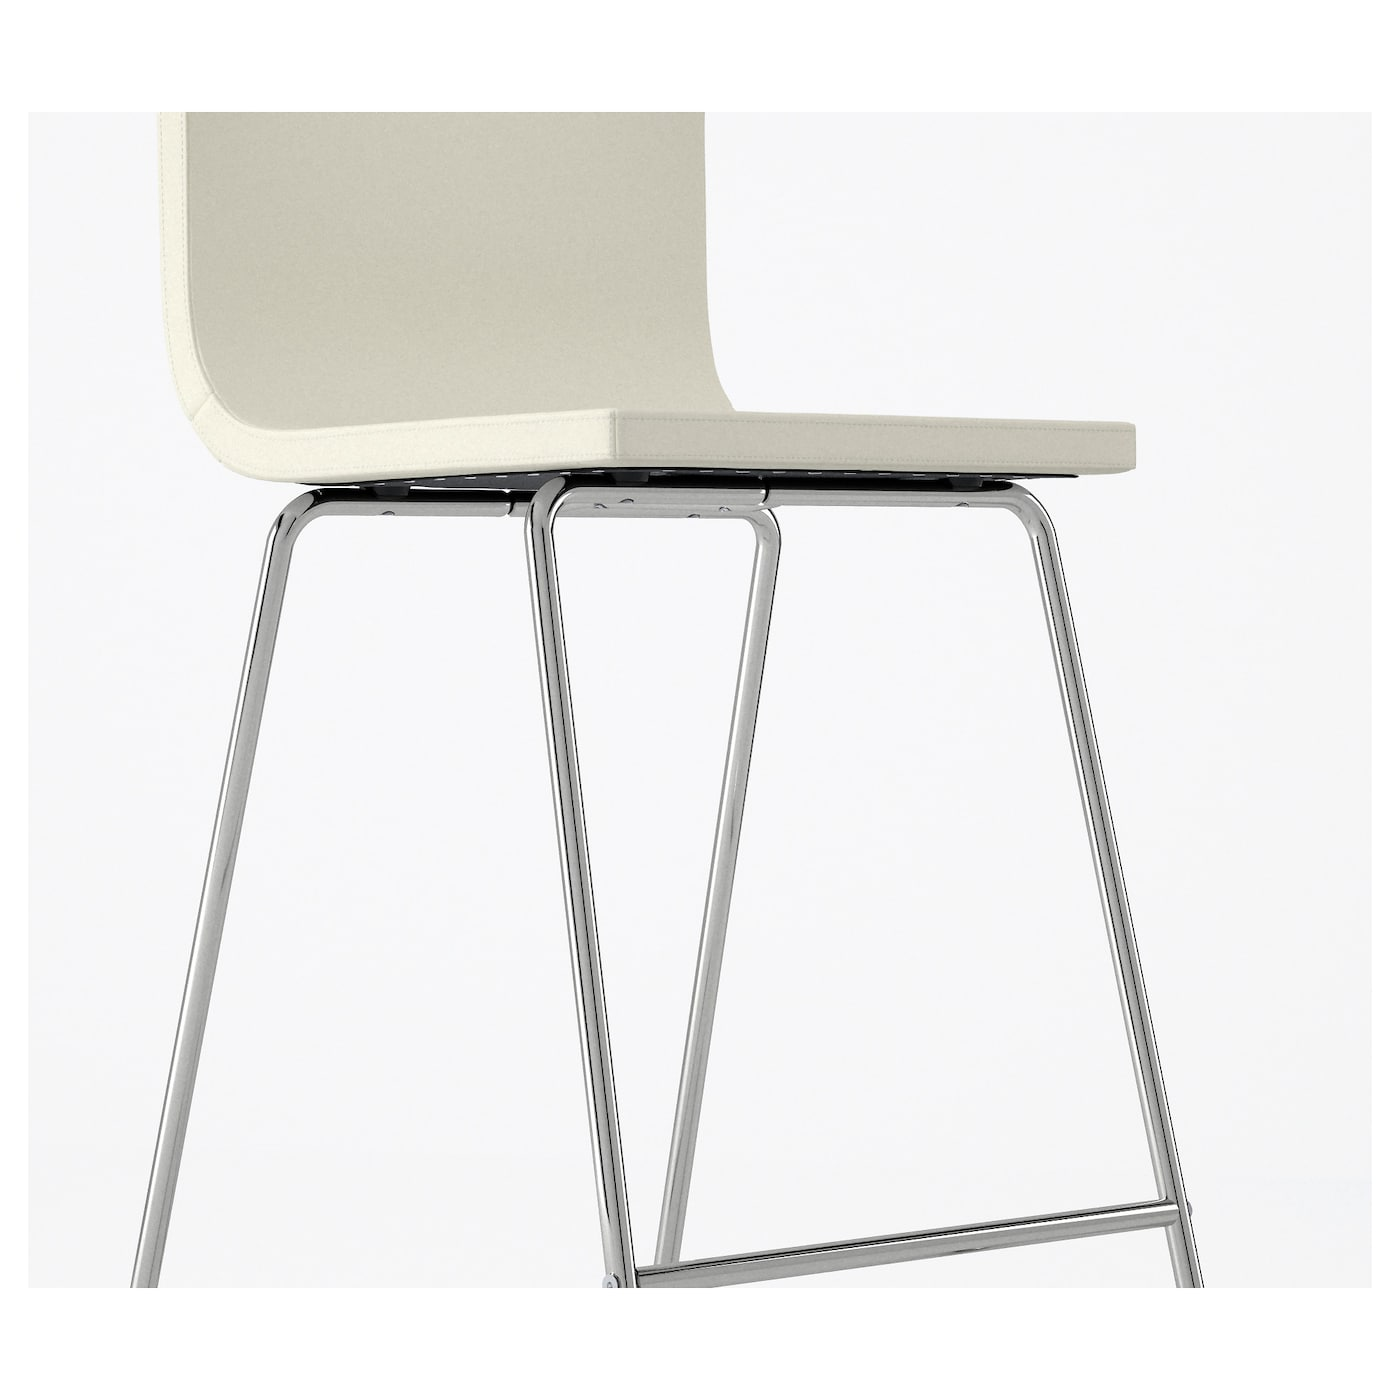 IKEA BERNHARD bar stool with backrest You sit comfortably thanks to the padded seat.